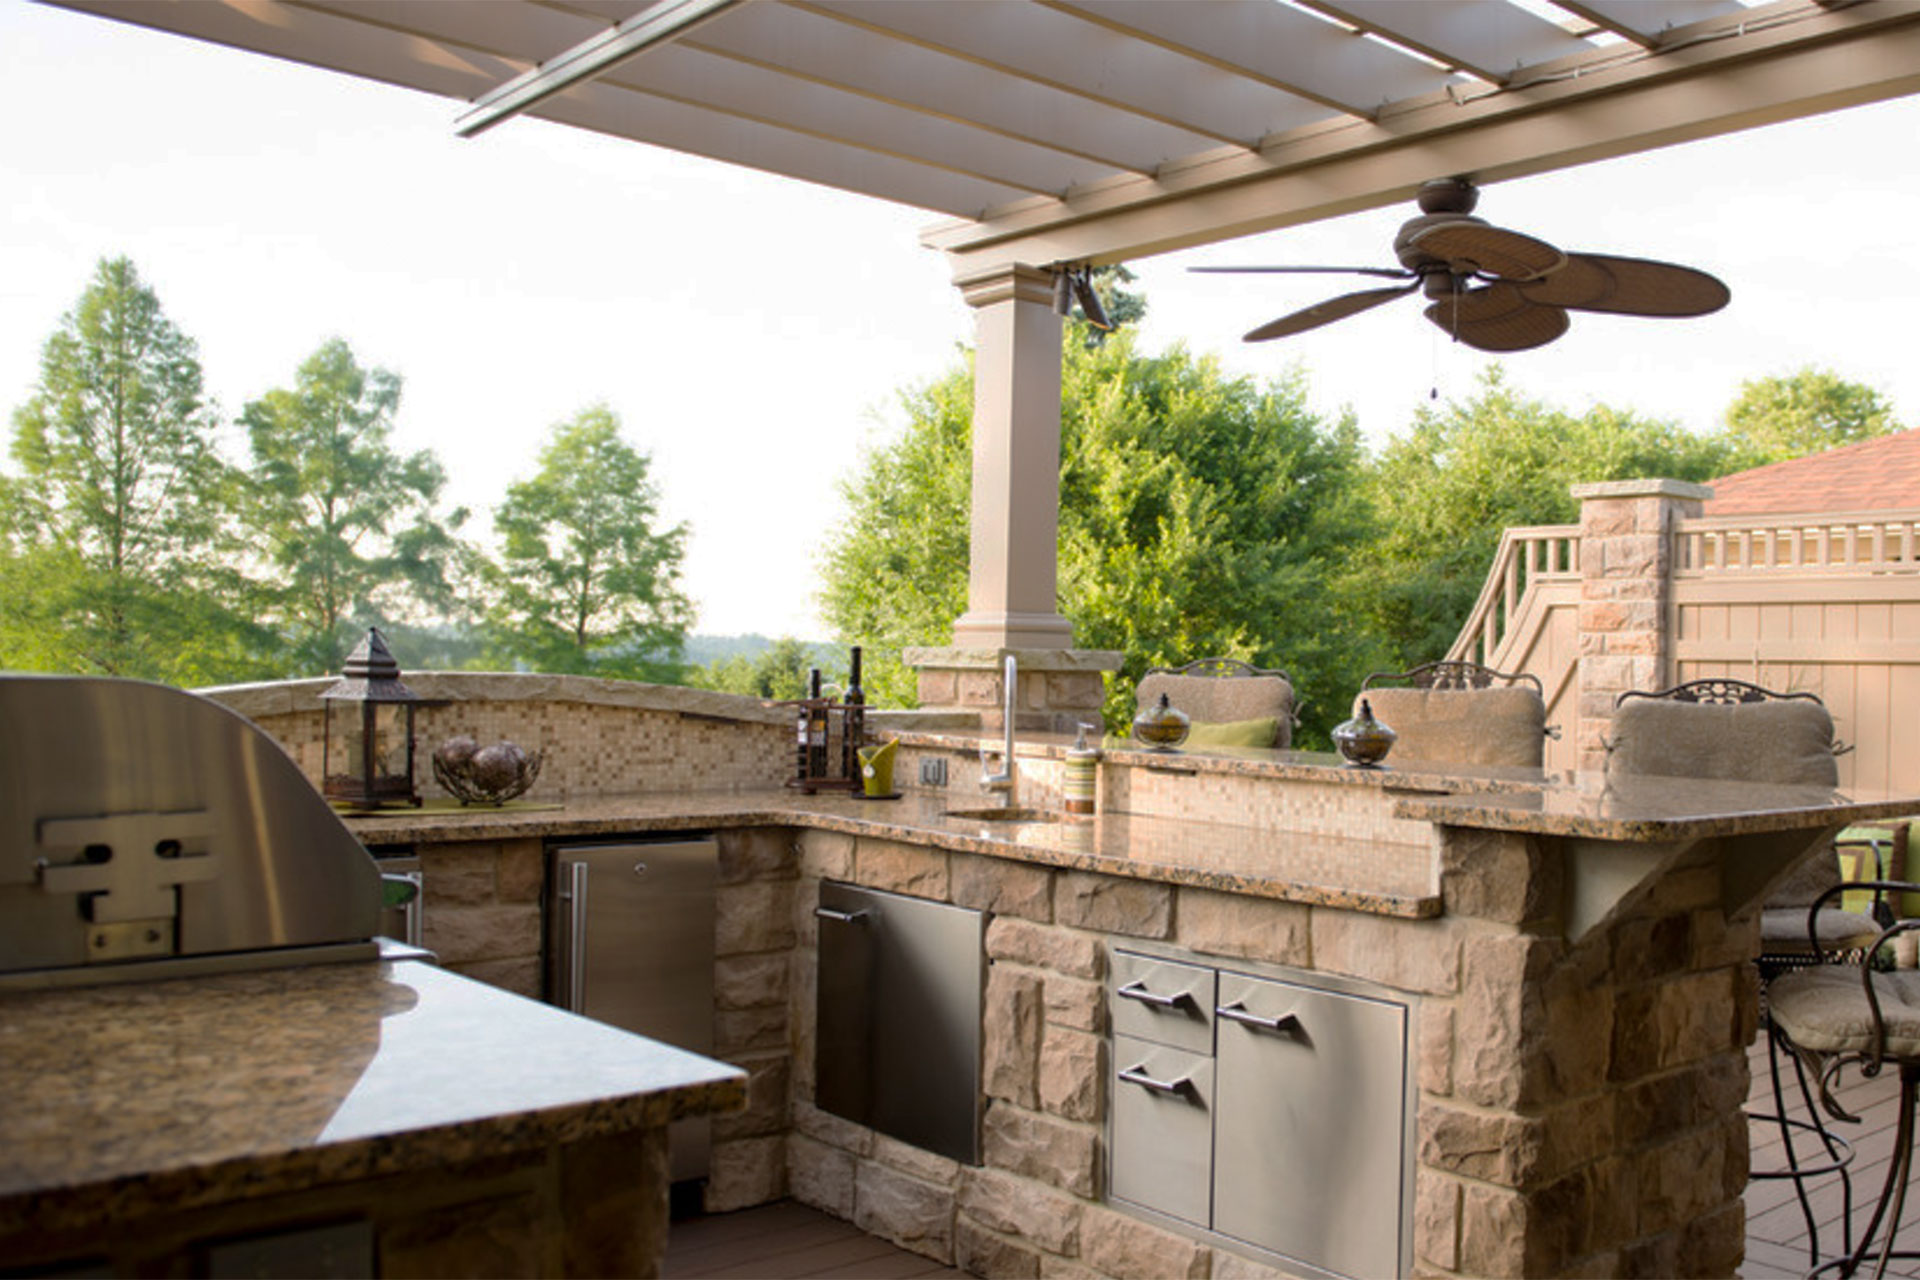 Outdoor Kitchen Covers in South Hills | ShadeFX Canopies